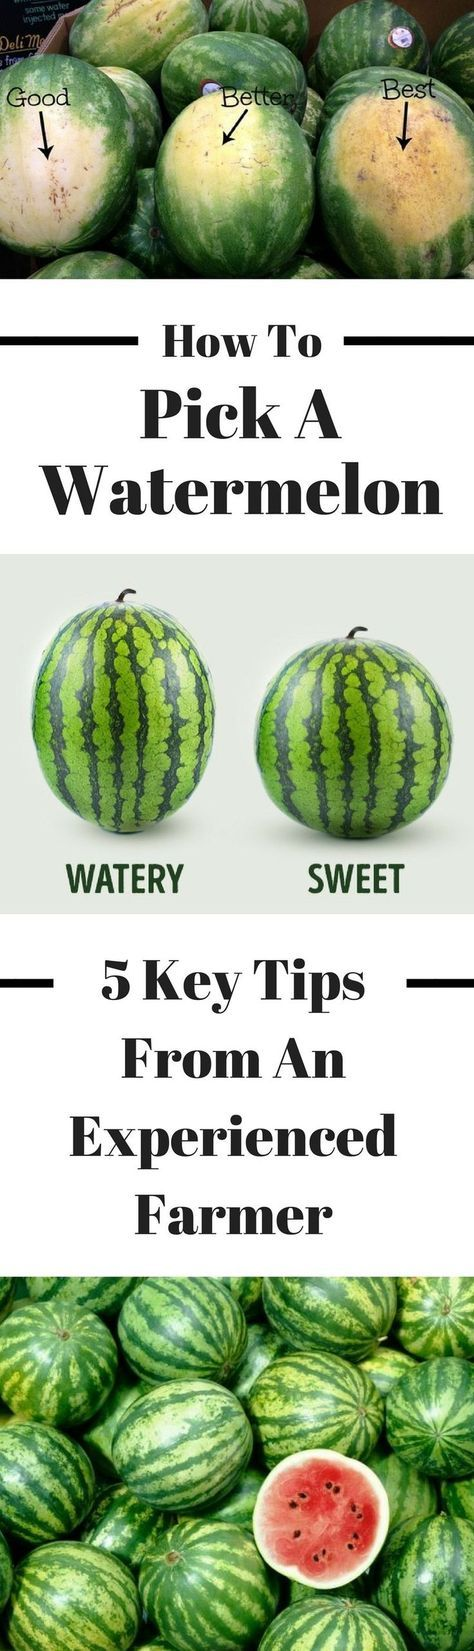 How to pick the perfect watermelon: 5 key tips from an experienced farmer #foodtips